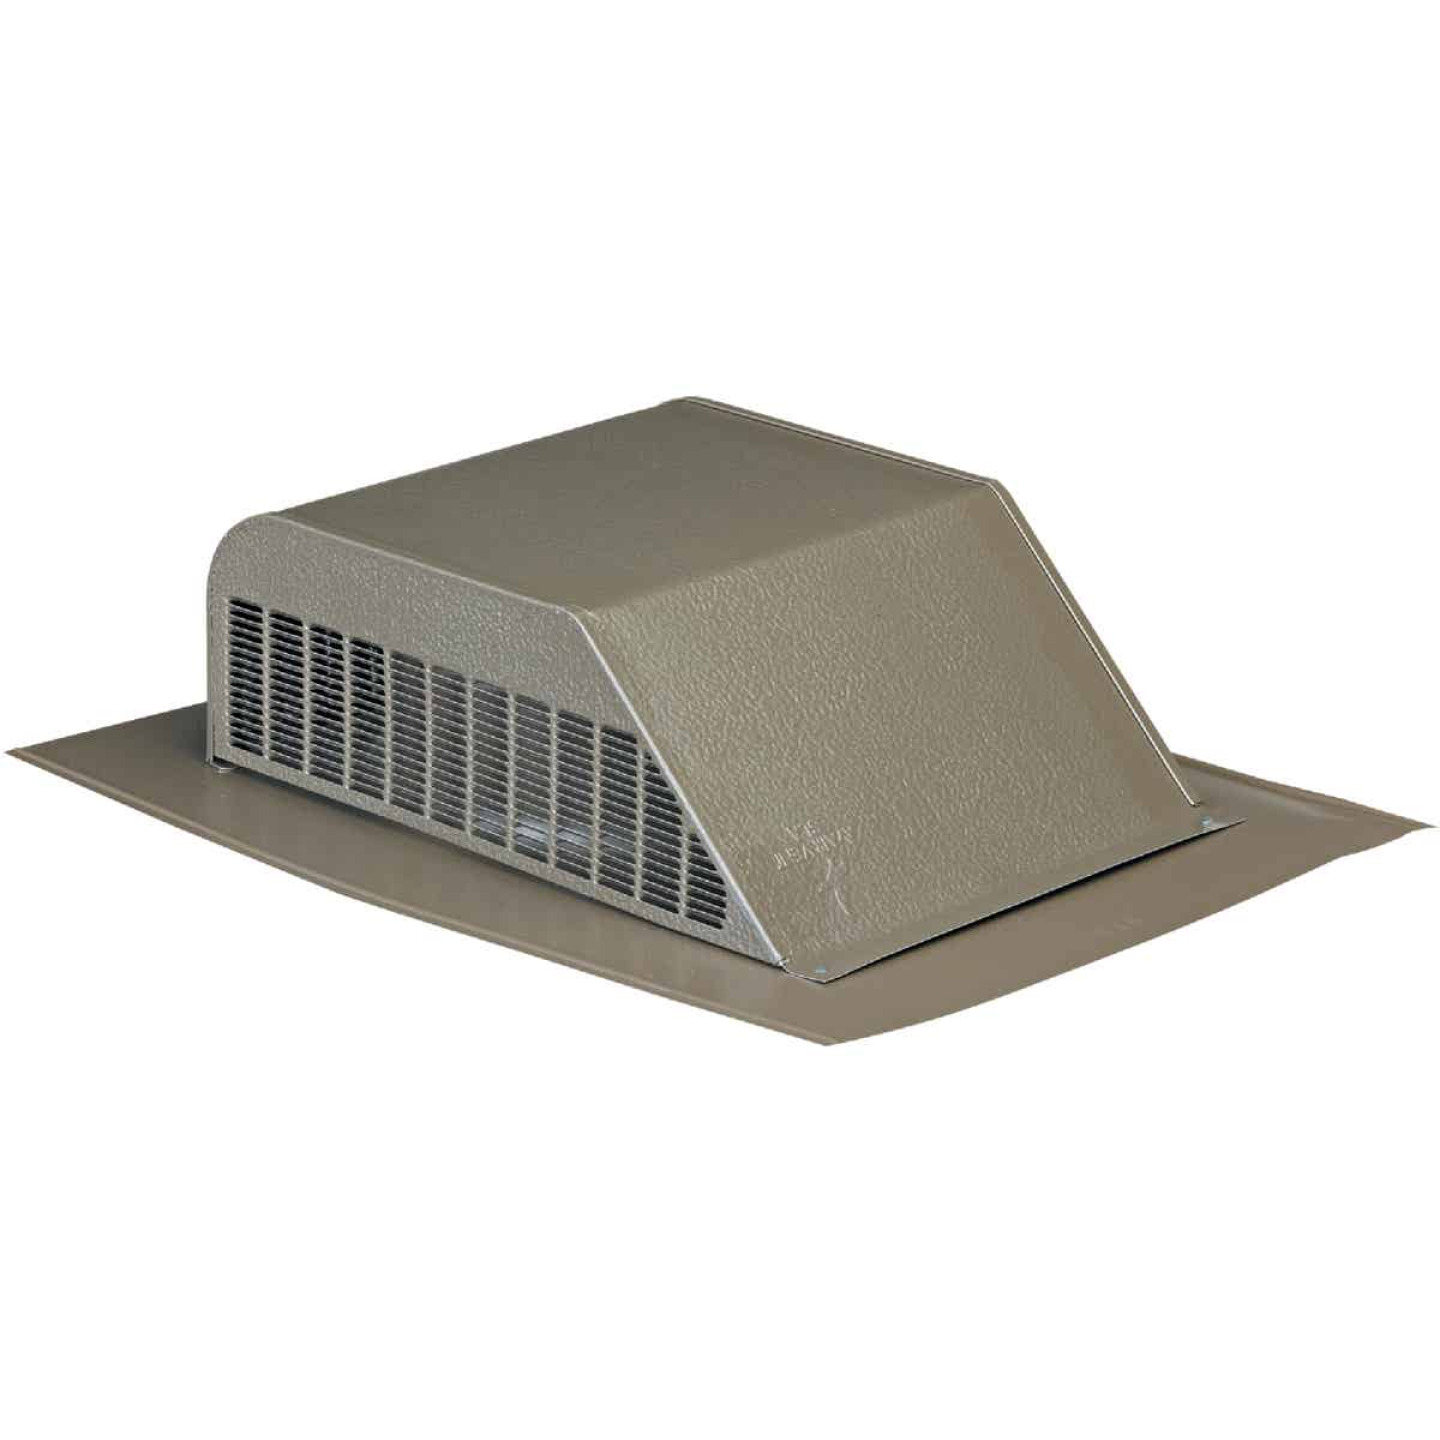 Airhawk 50 In. Weatherwood Galvanized Steel Slant Back Roof Vent Image 1